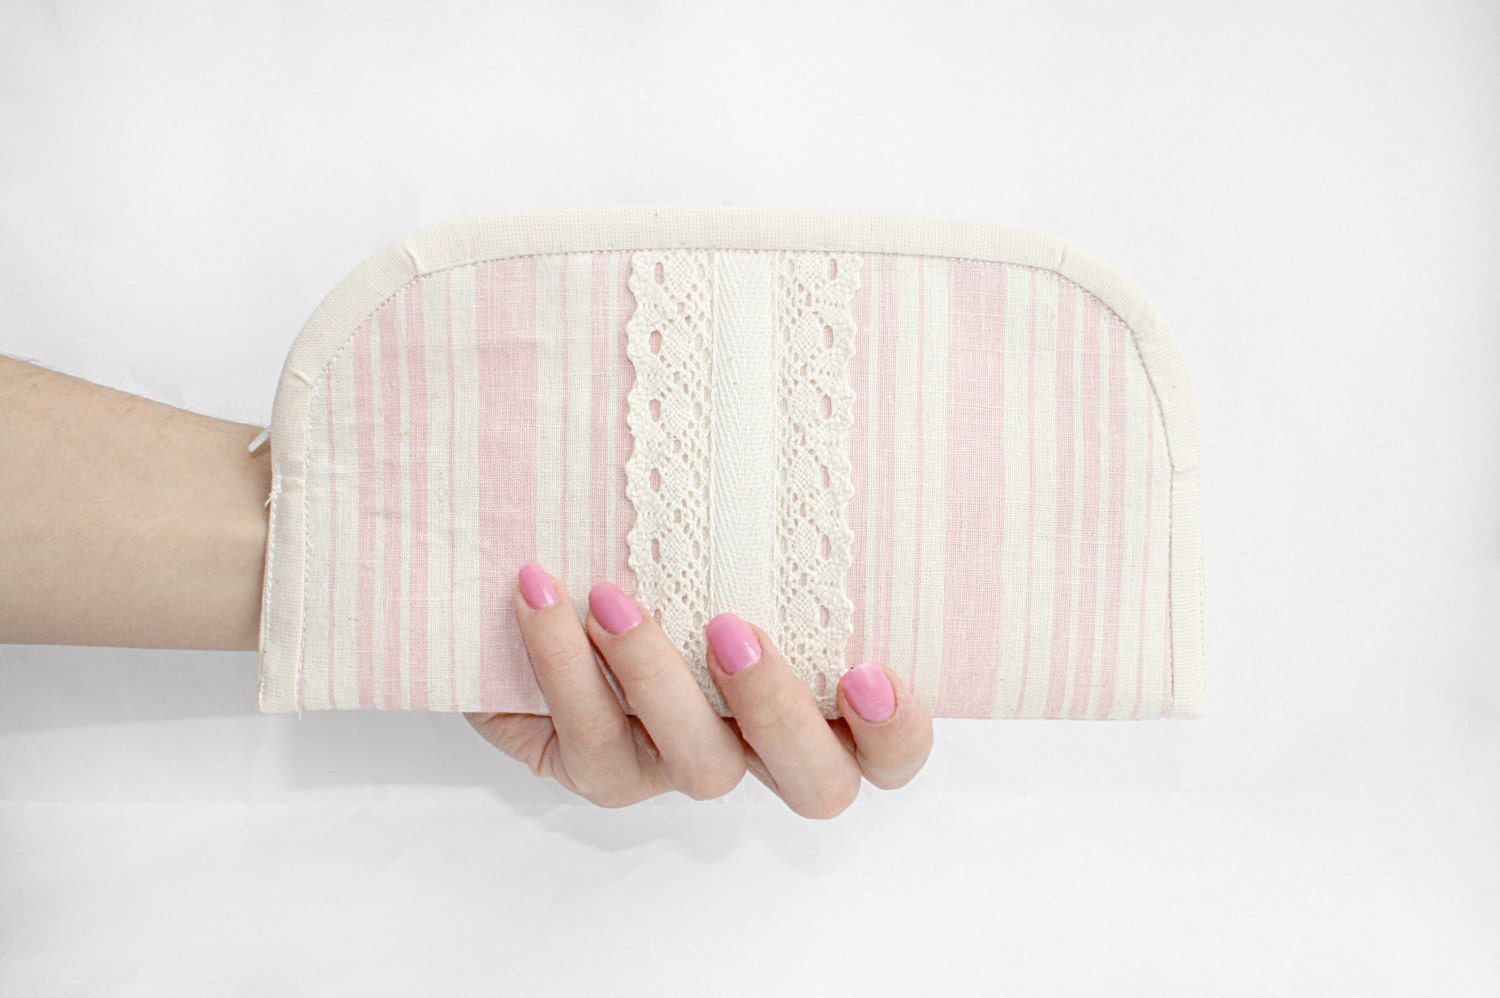 Pleated striped clutch pale pink zipper pouch cosmetic bag - FriendlyHandmade